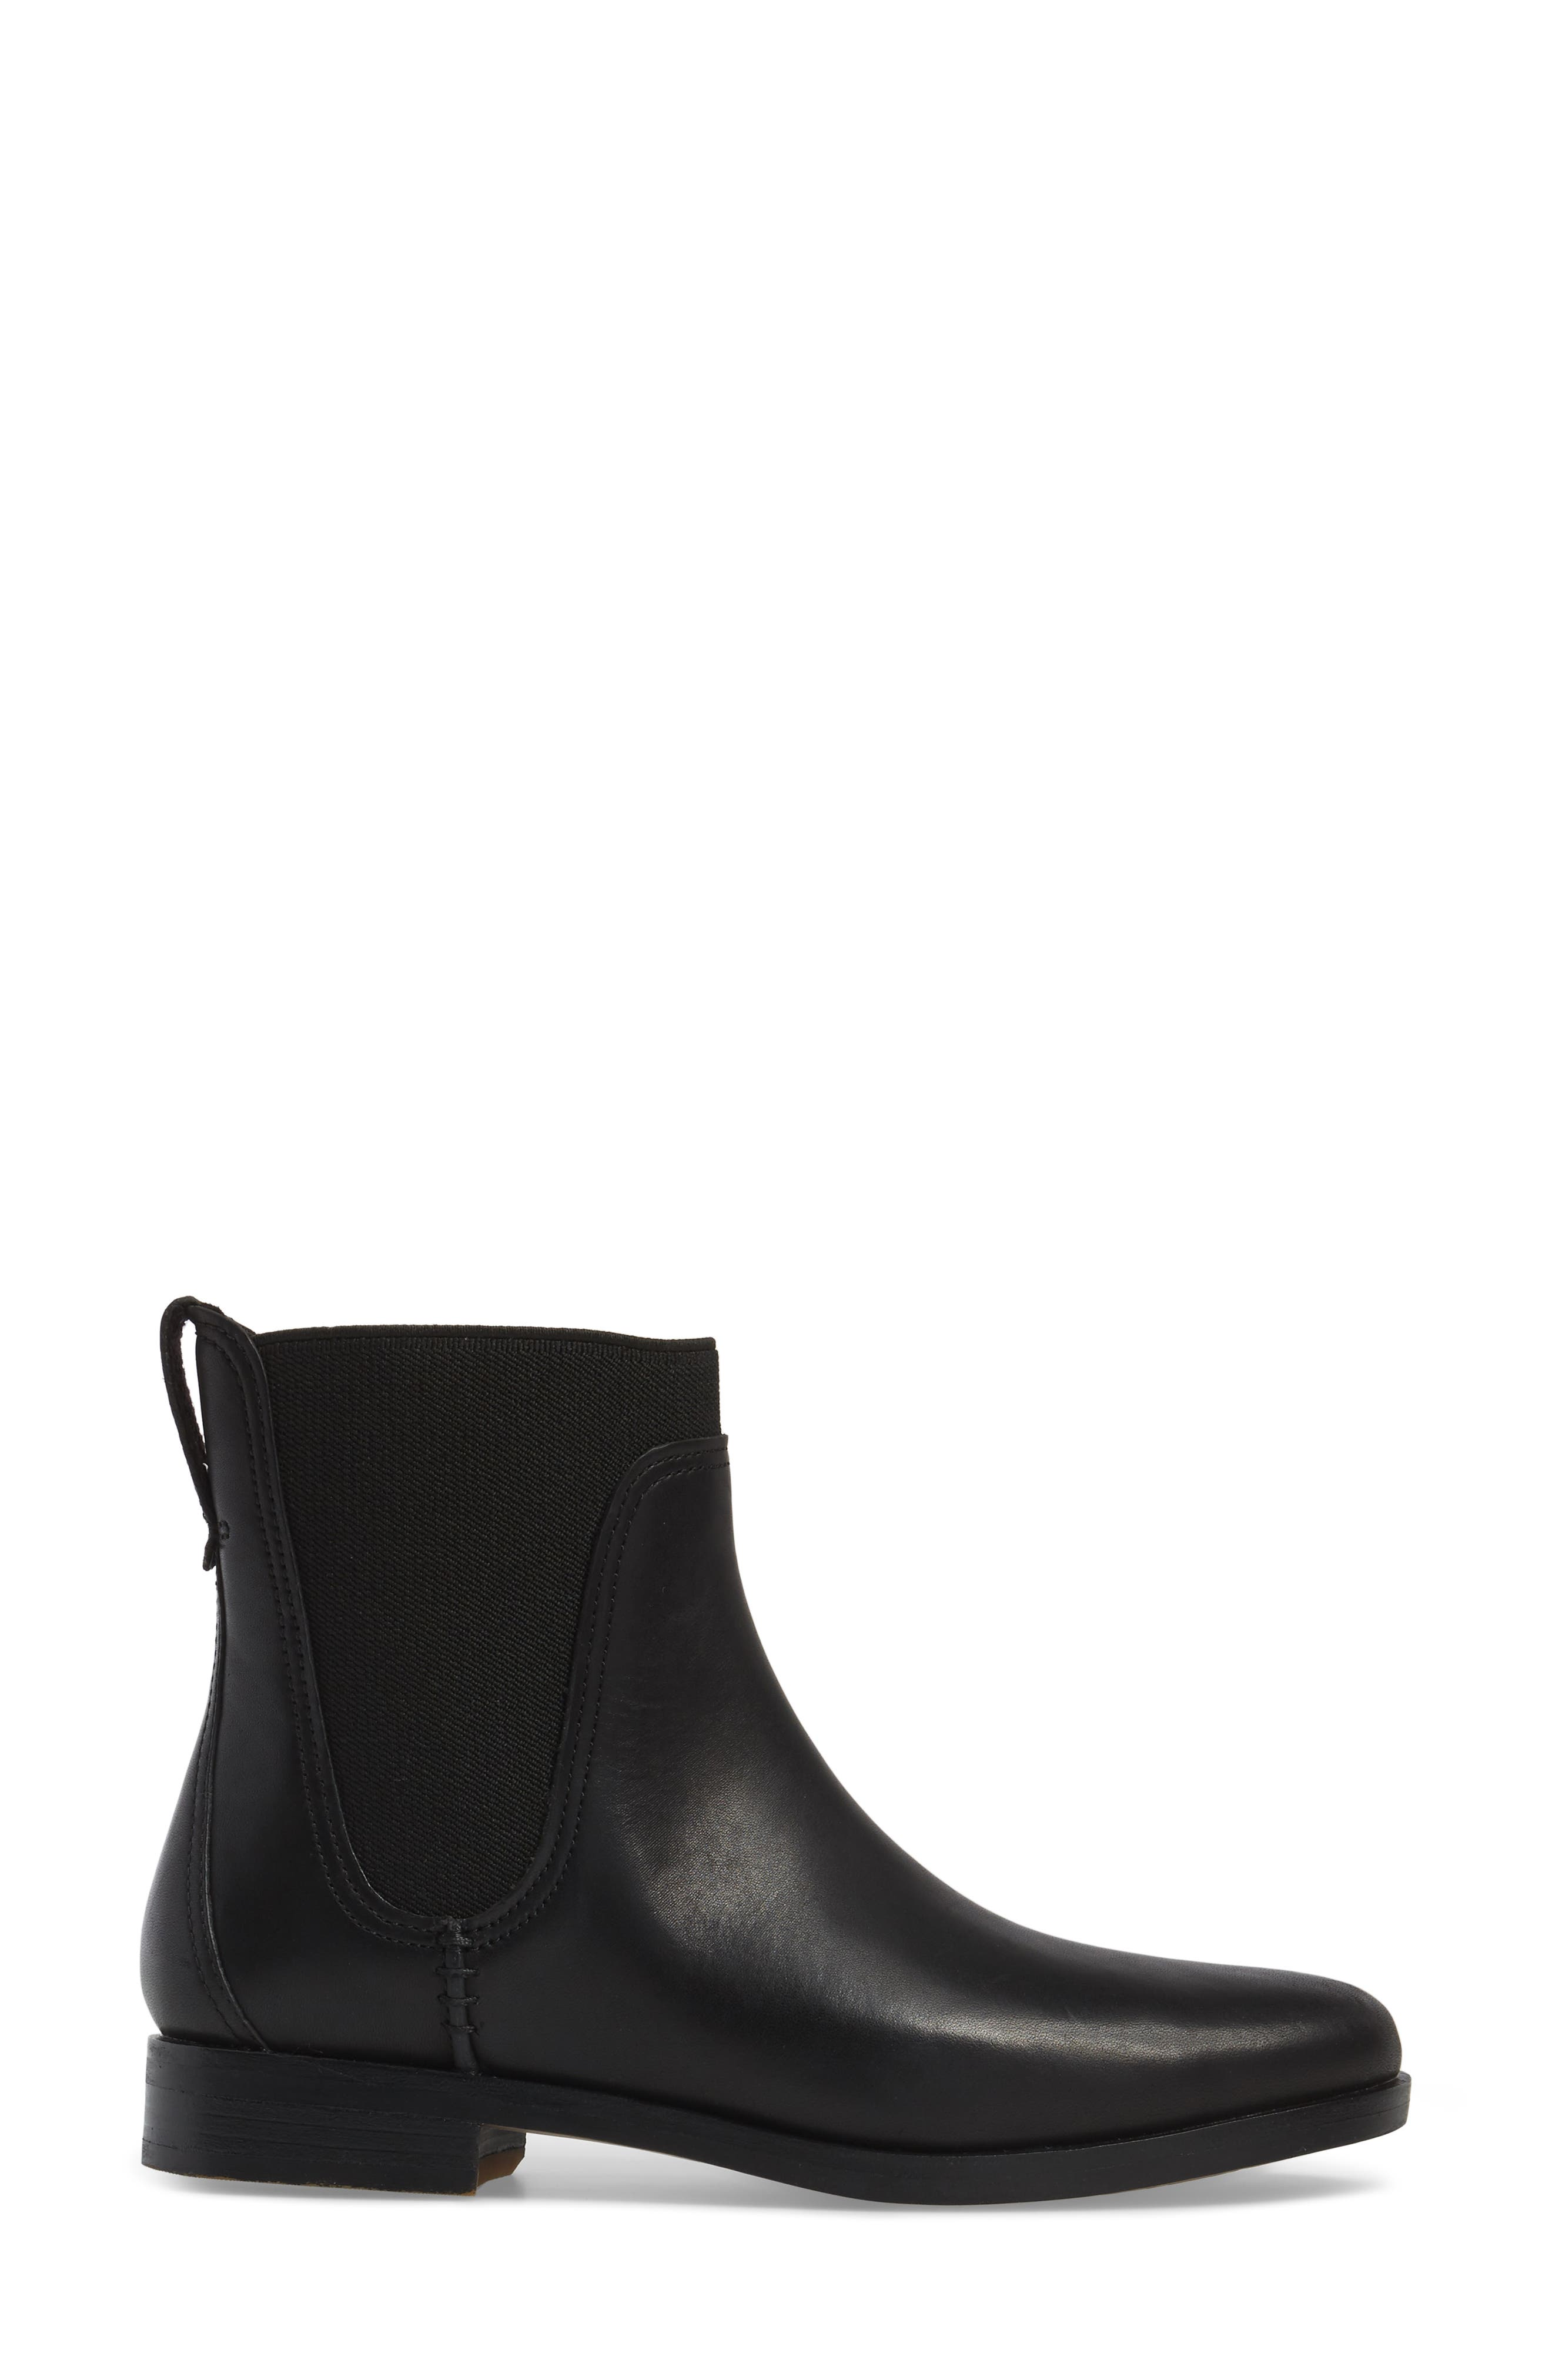 Somers Falls Water Resistant Chelsea Boot,                             Alternate thumbnail 3, color,                             Jet Black Swank Leather